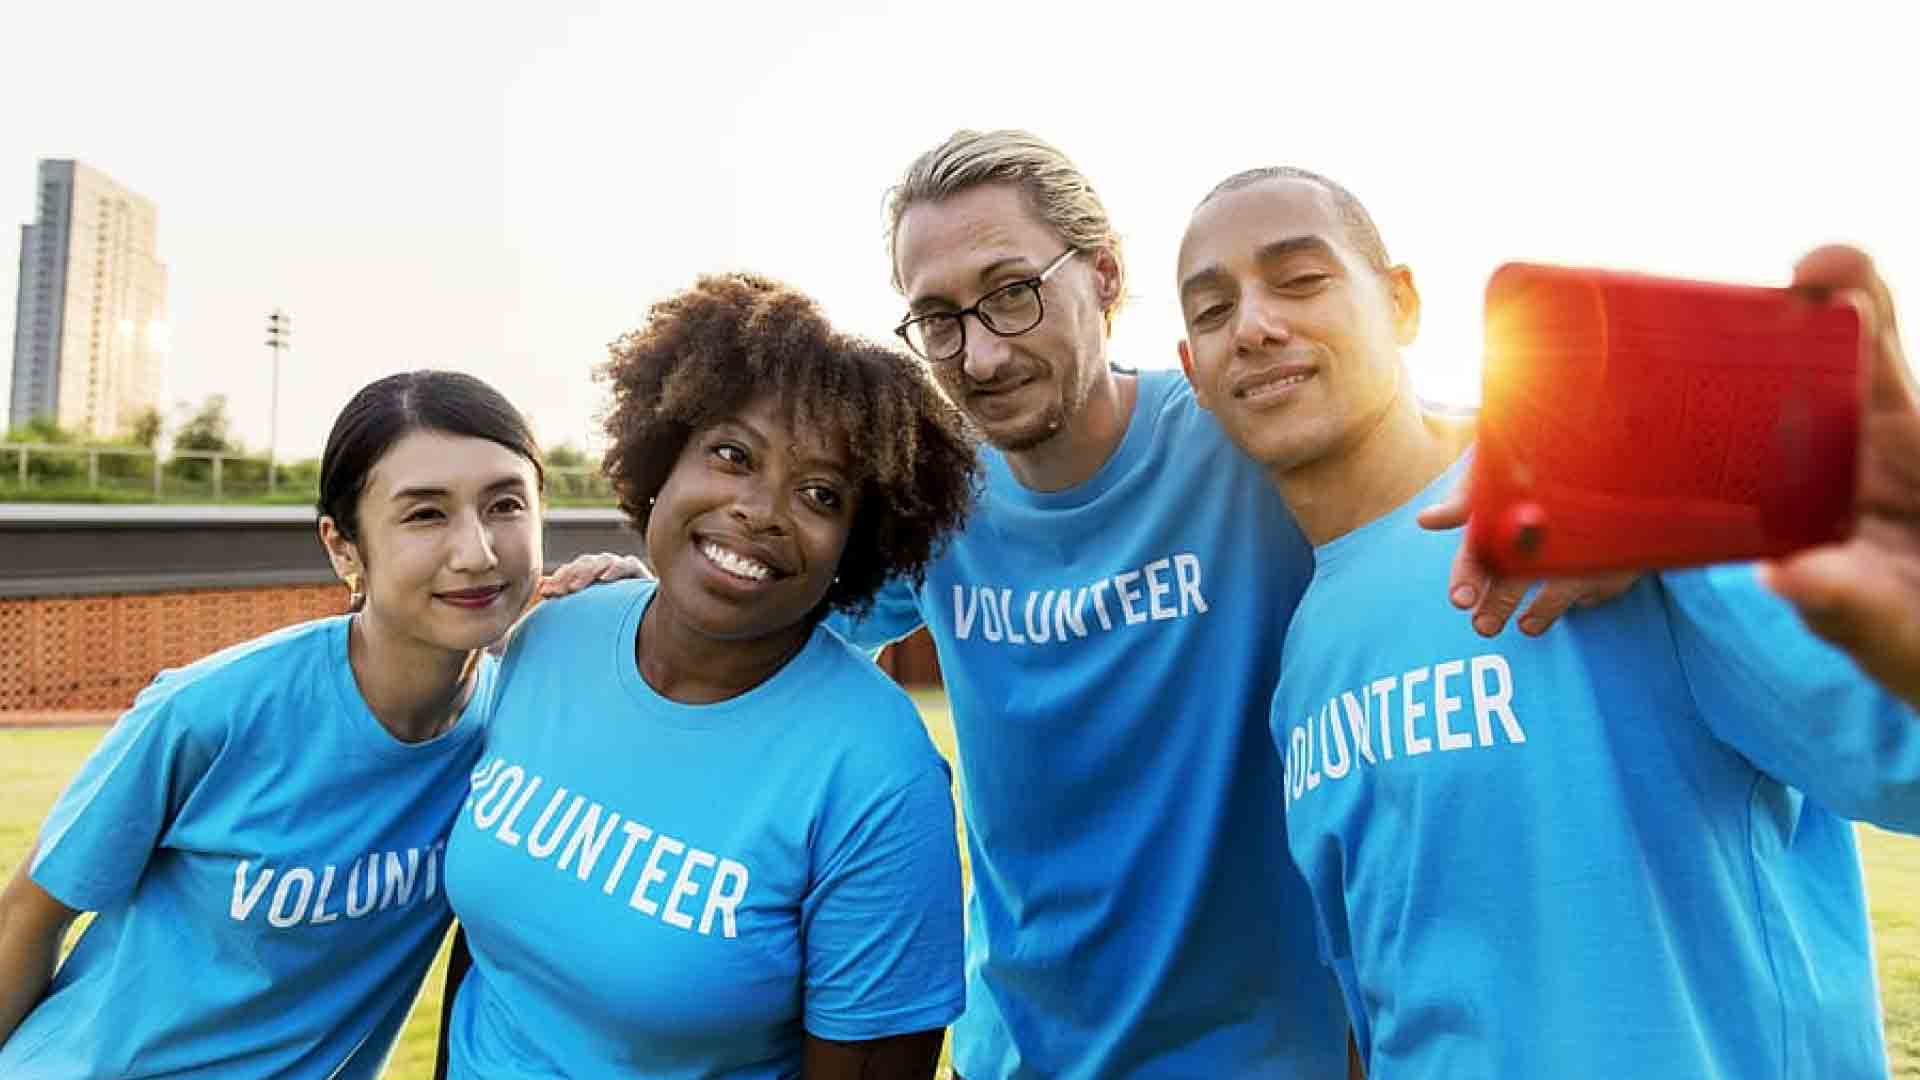 5 Reasons to volunteer for career boosting